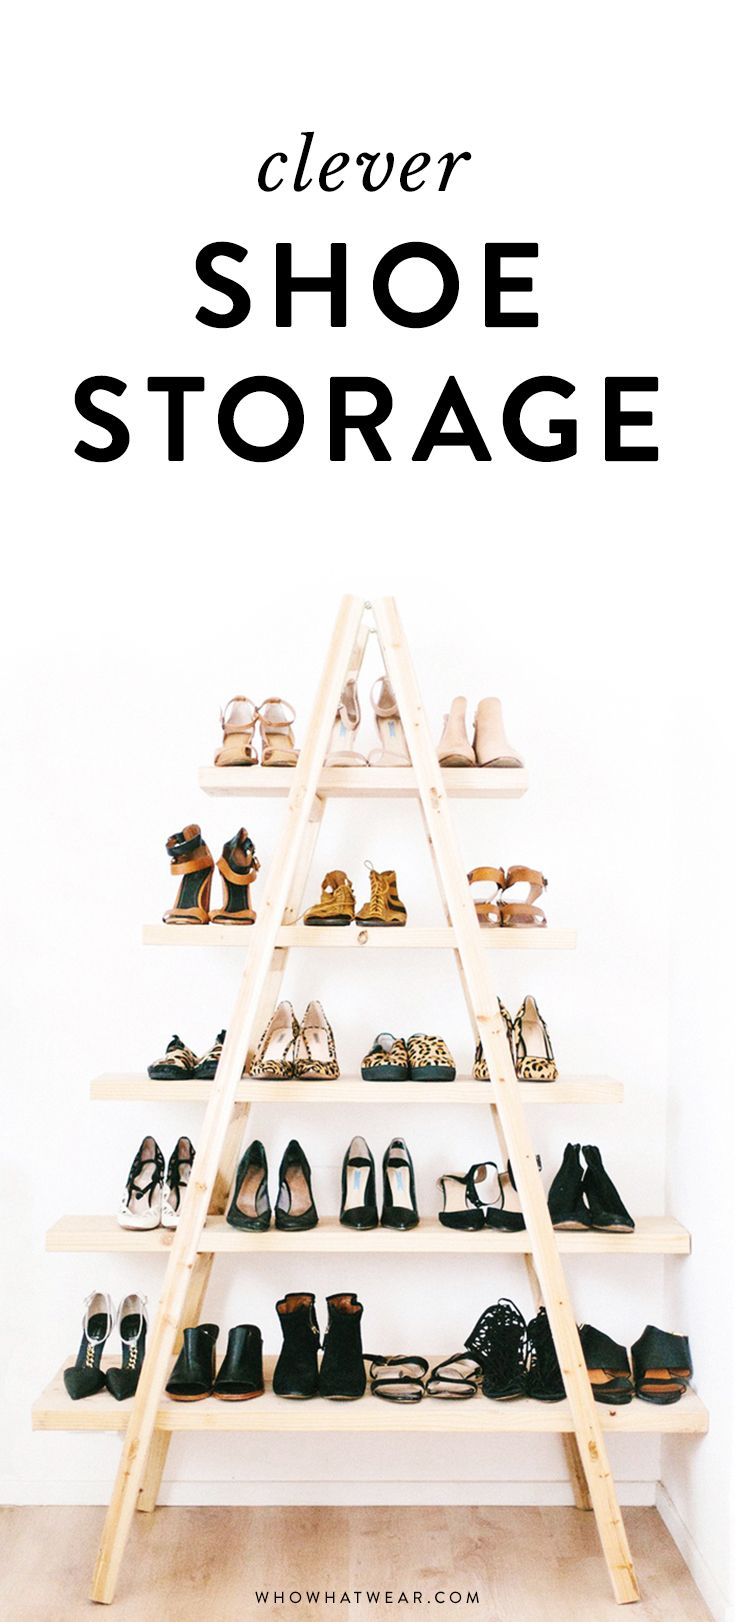 Shoe organization 101: Clever shoe storage ideas.